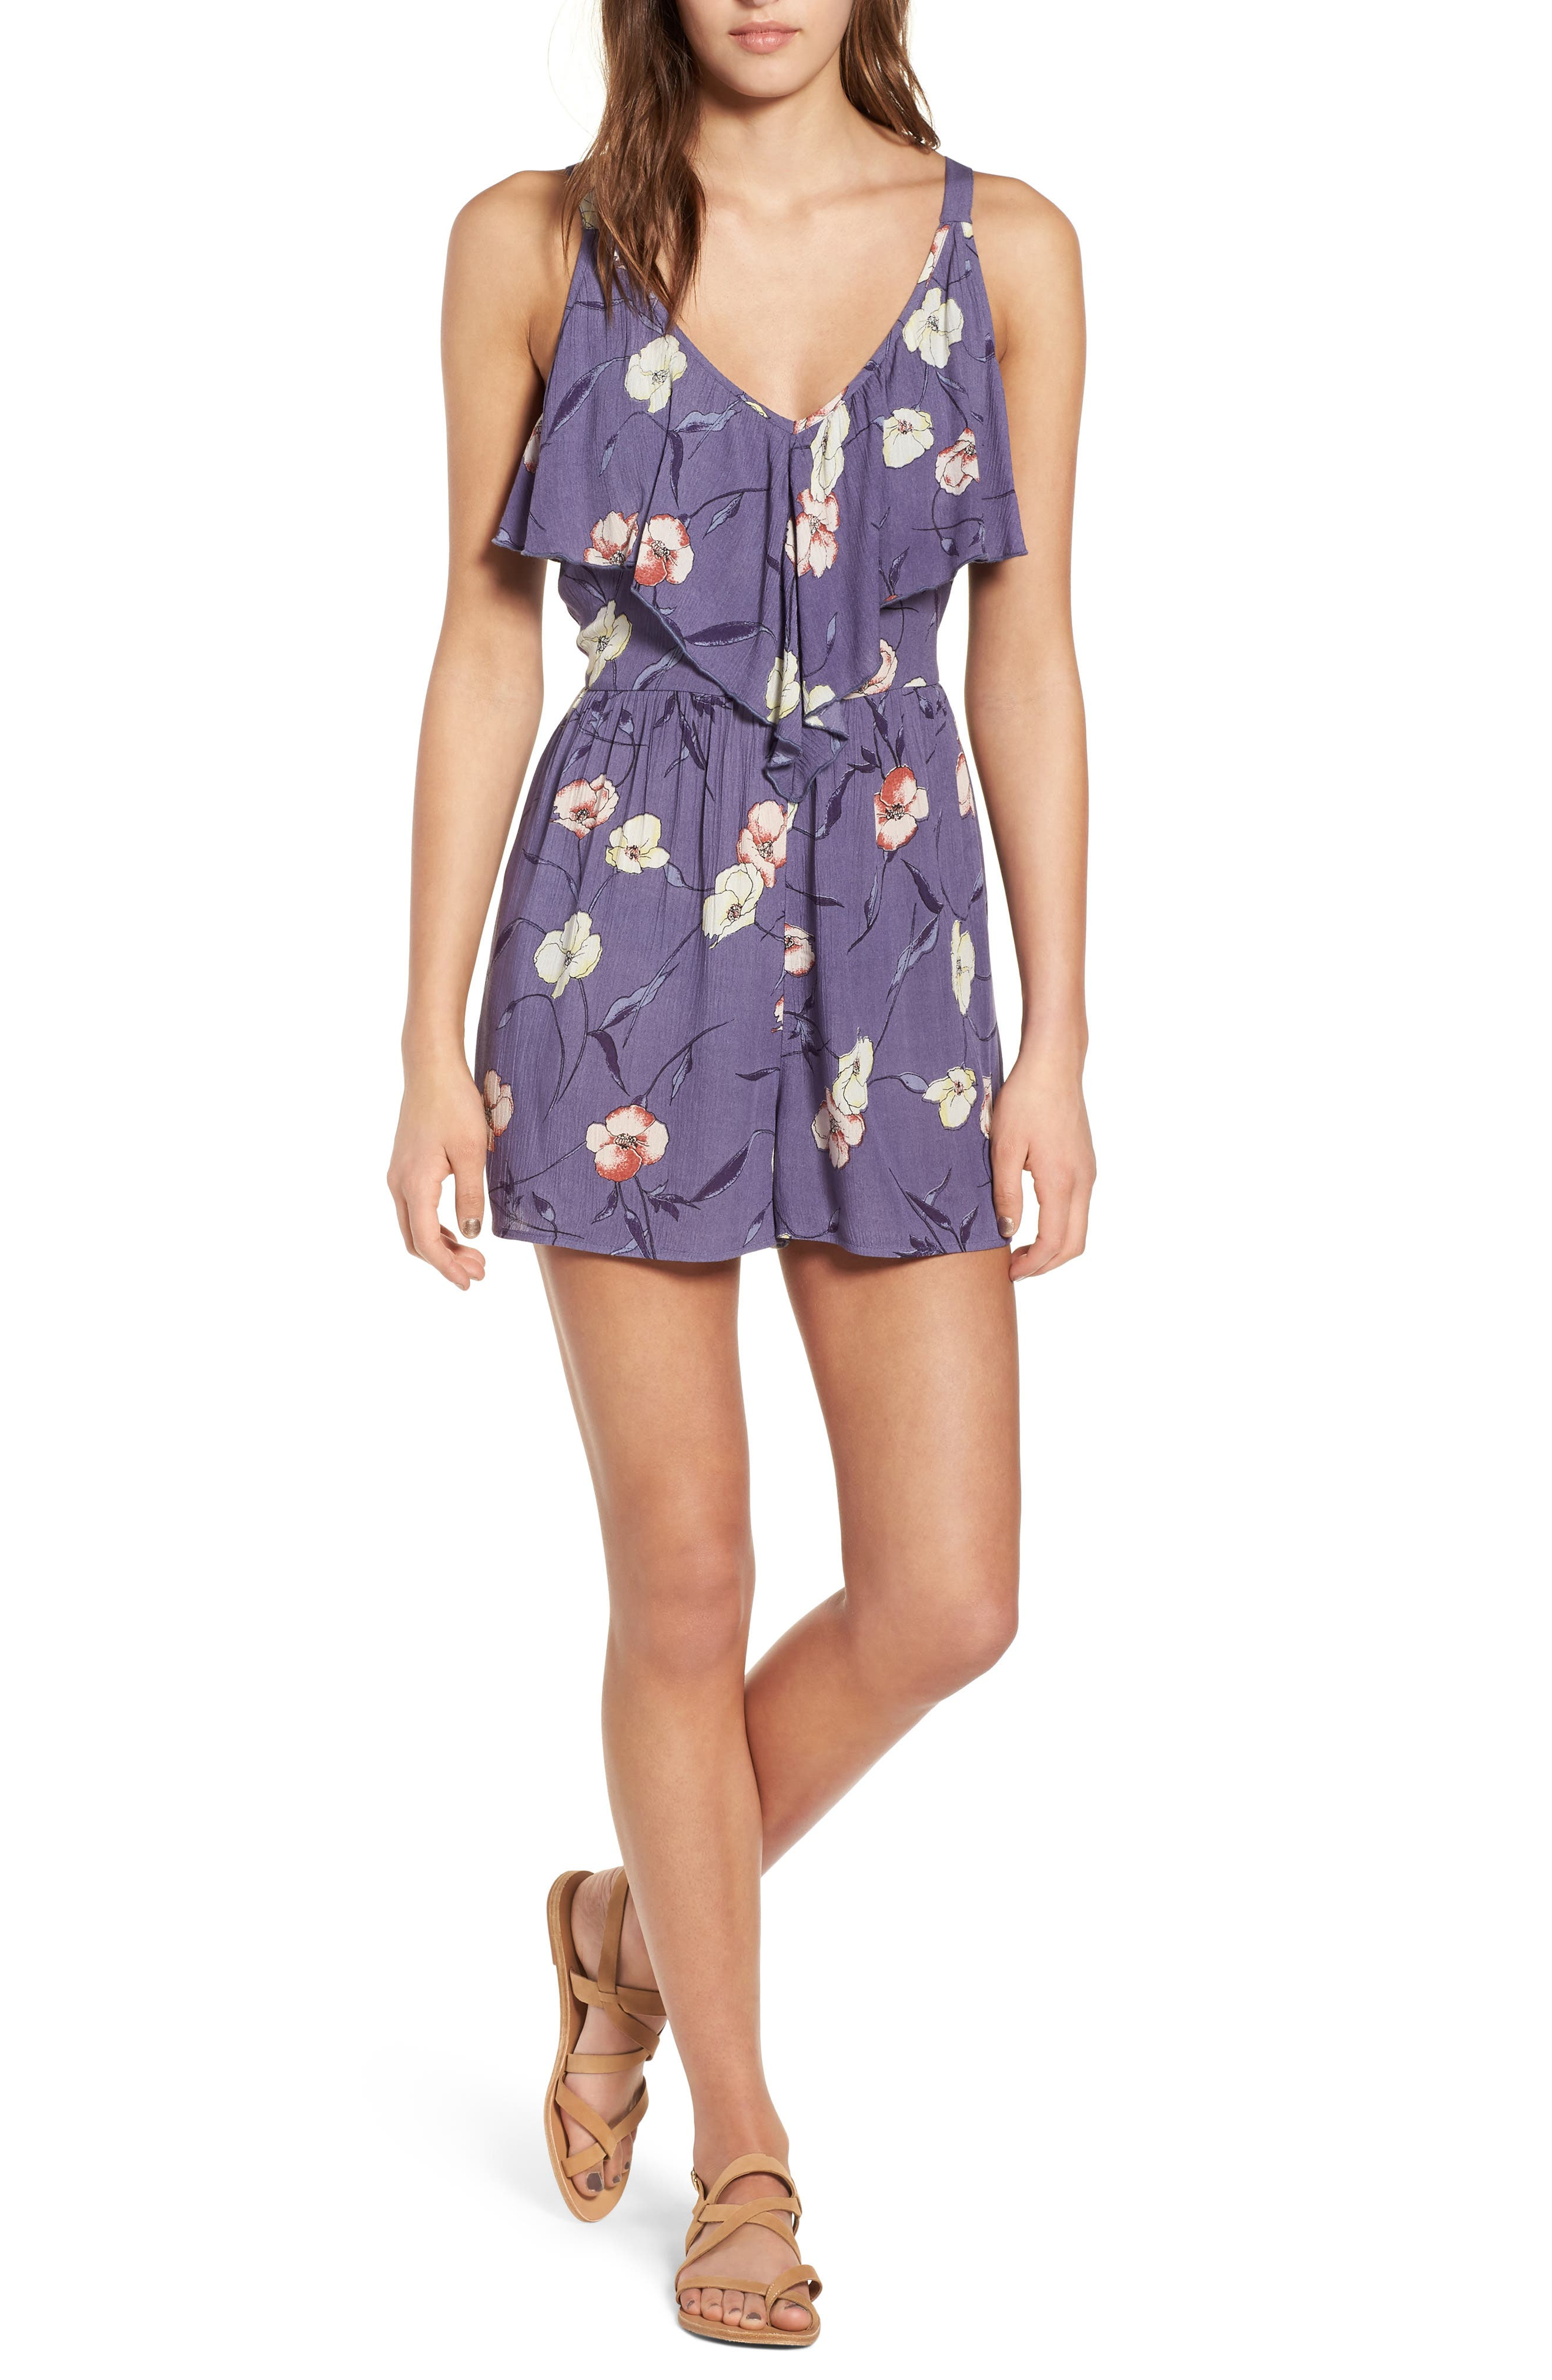 Band of Gypsies Floral Print Ruffle Front Romper